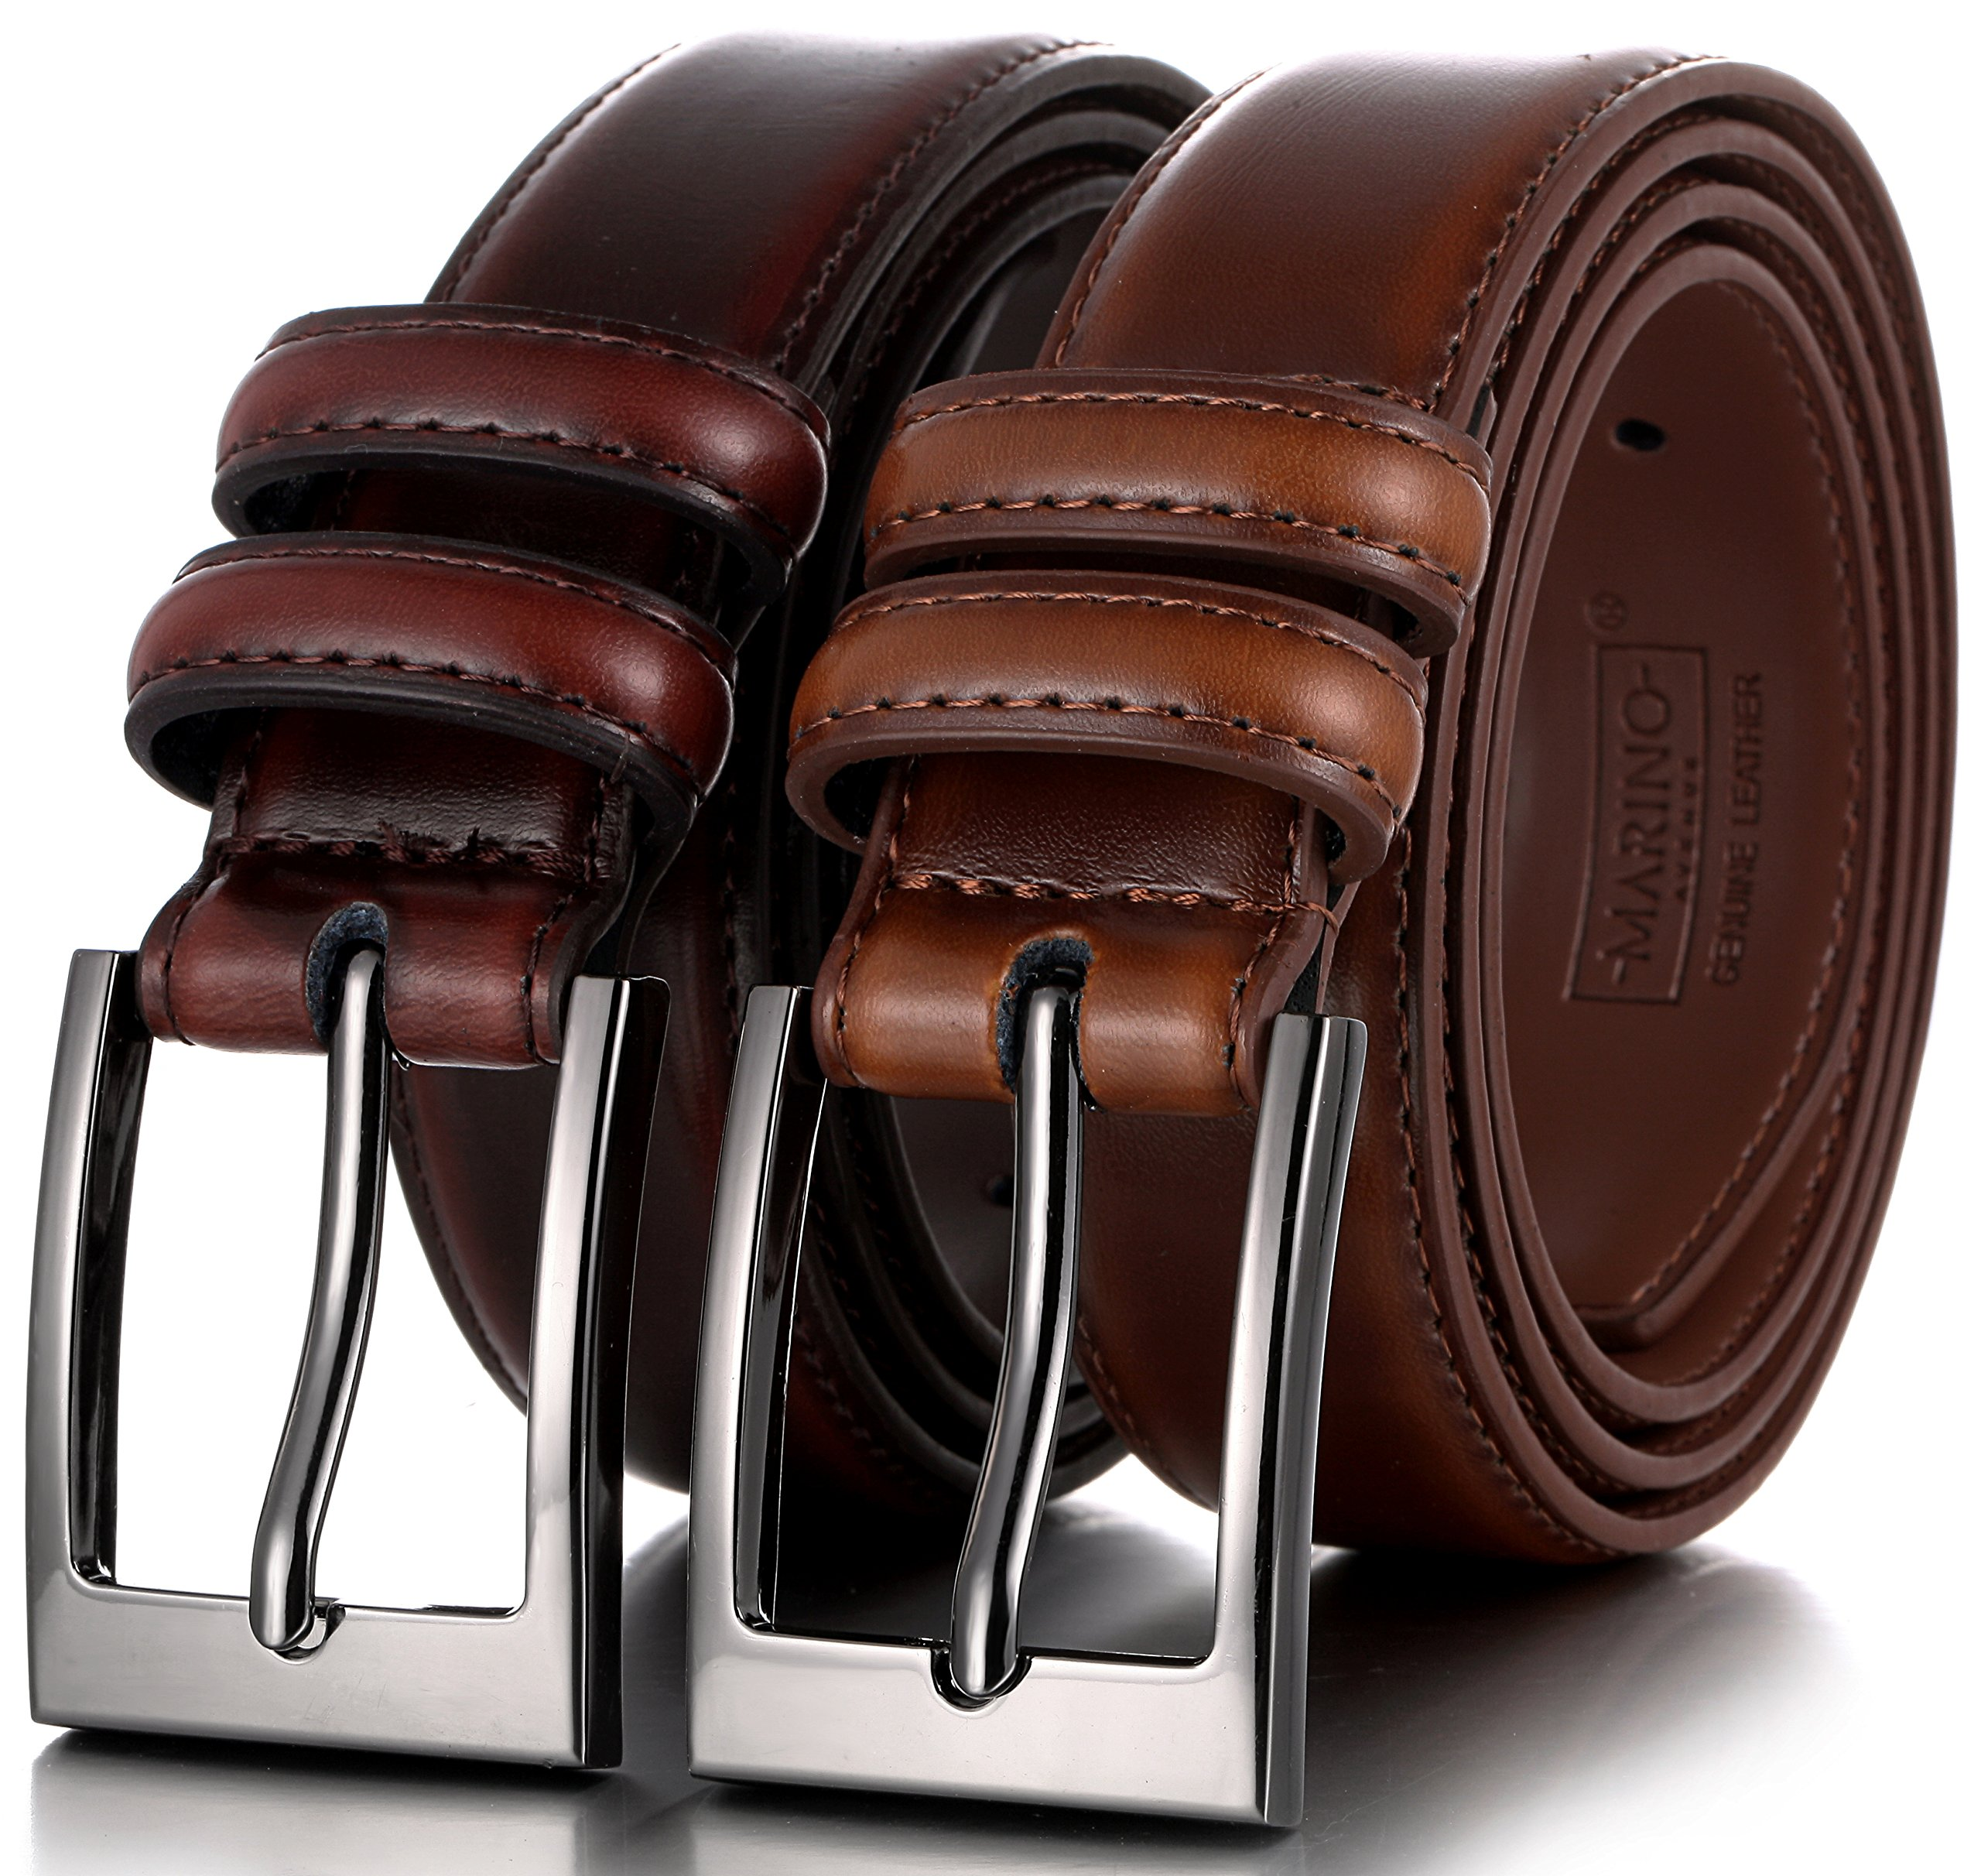 Marino's Men Genuine Leather Dress Belt with Single Prong Buckle - Pack of 2-1 Mahogany and 1 Burnt Umber - 54